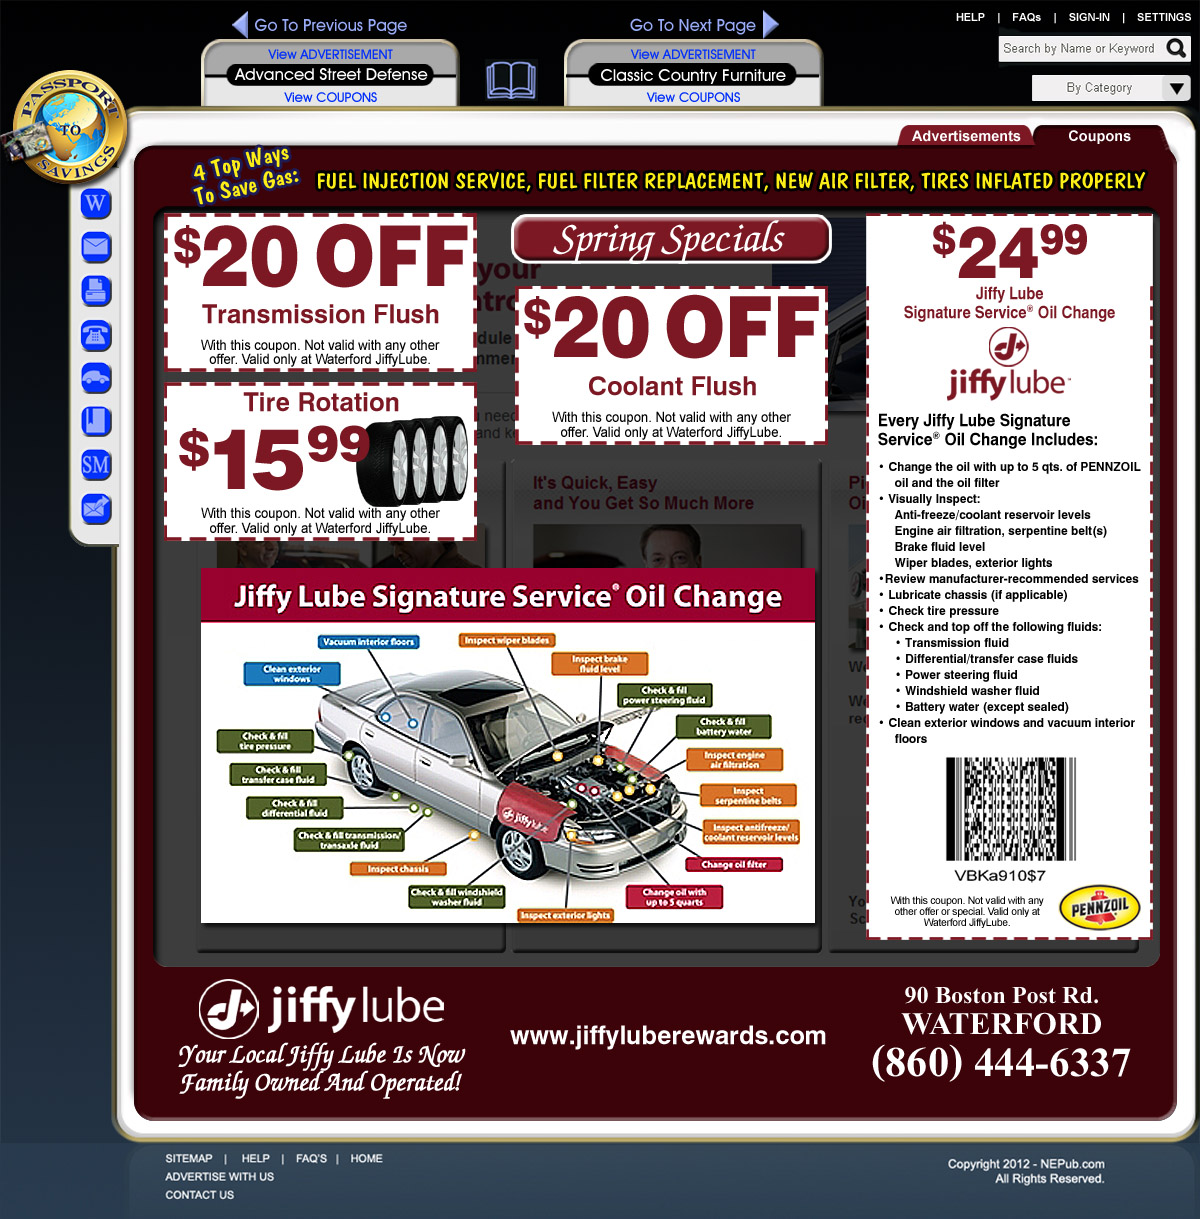 Oil Change Coupons Jiffy Lube Illinois Coupons For Home. - 1200x1219 ...